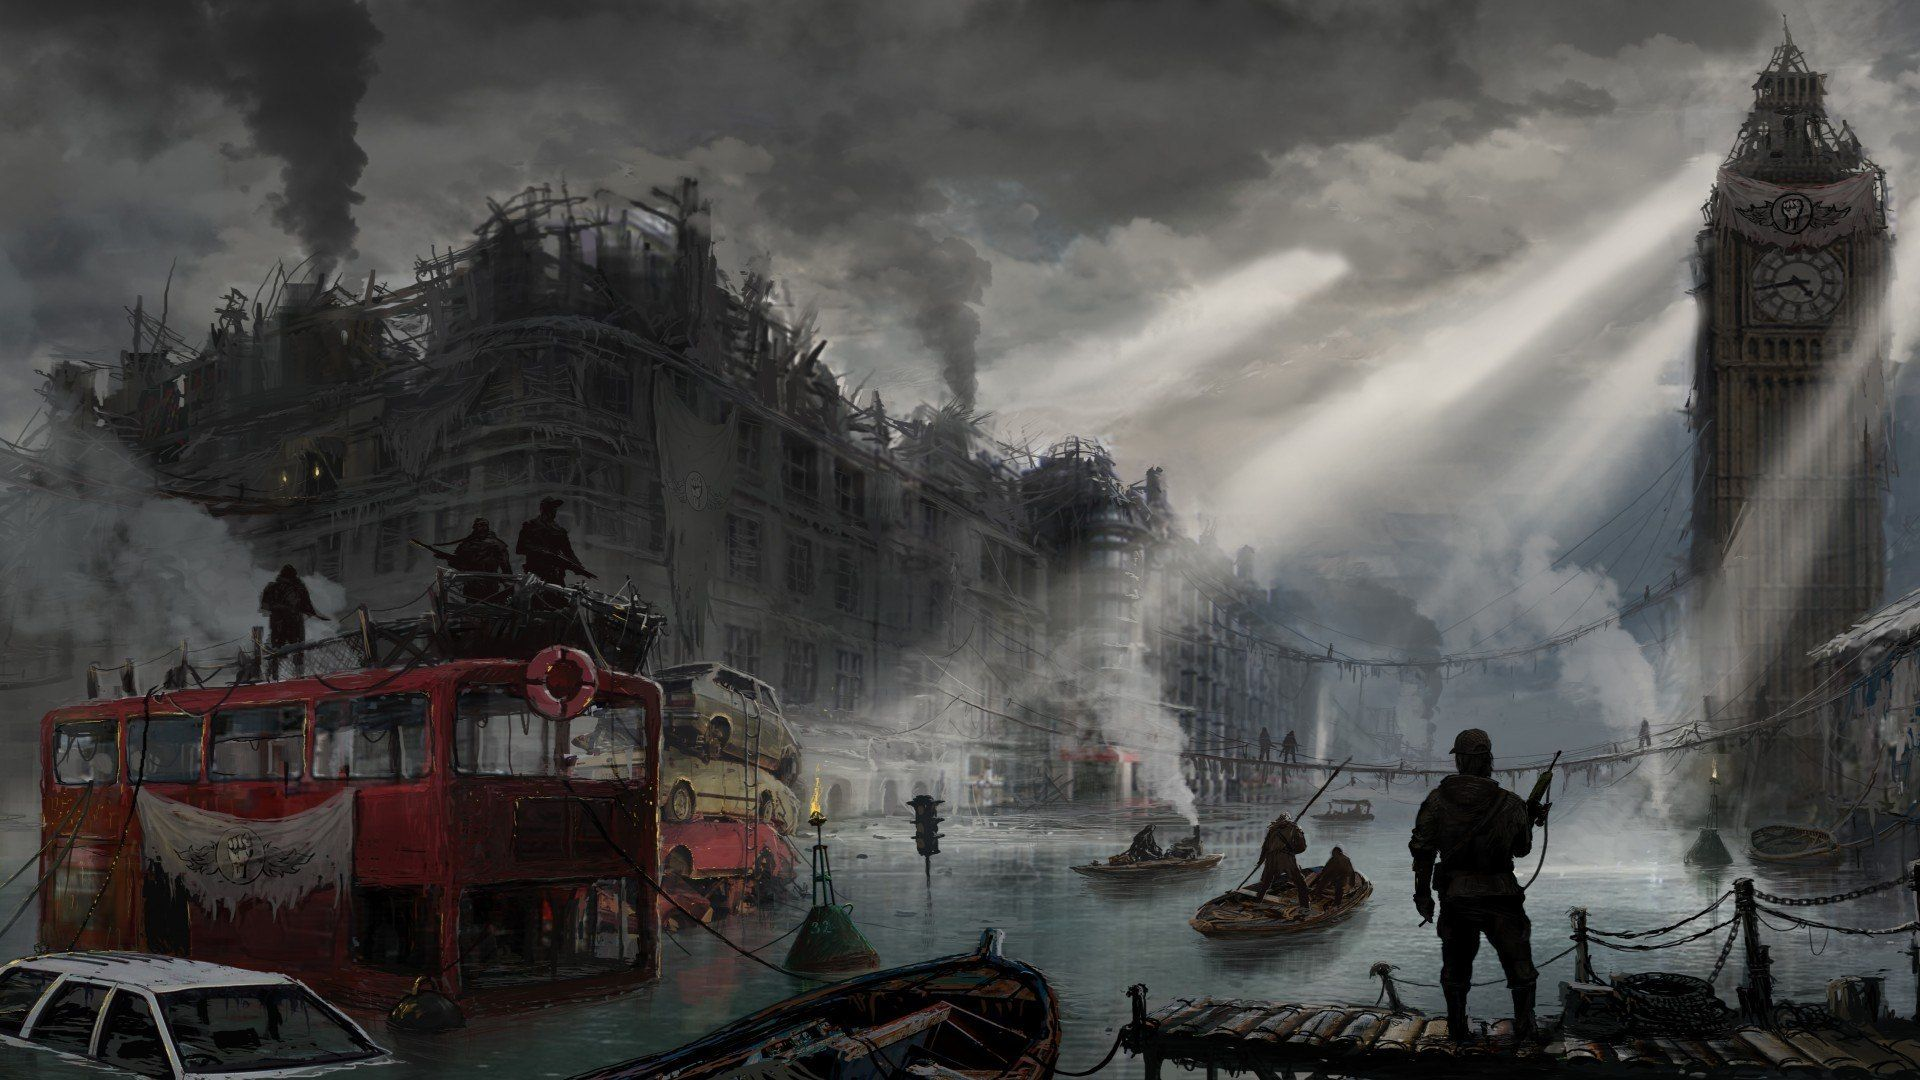 Post Apocalyptic London - Google